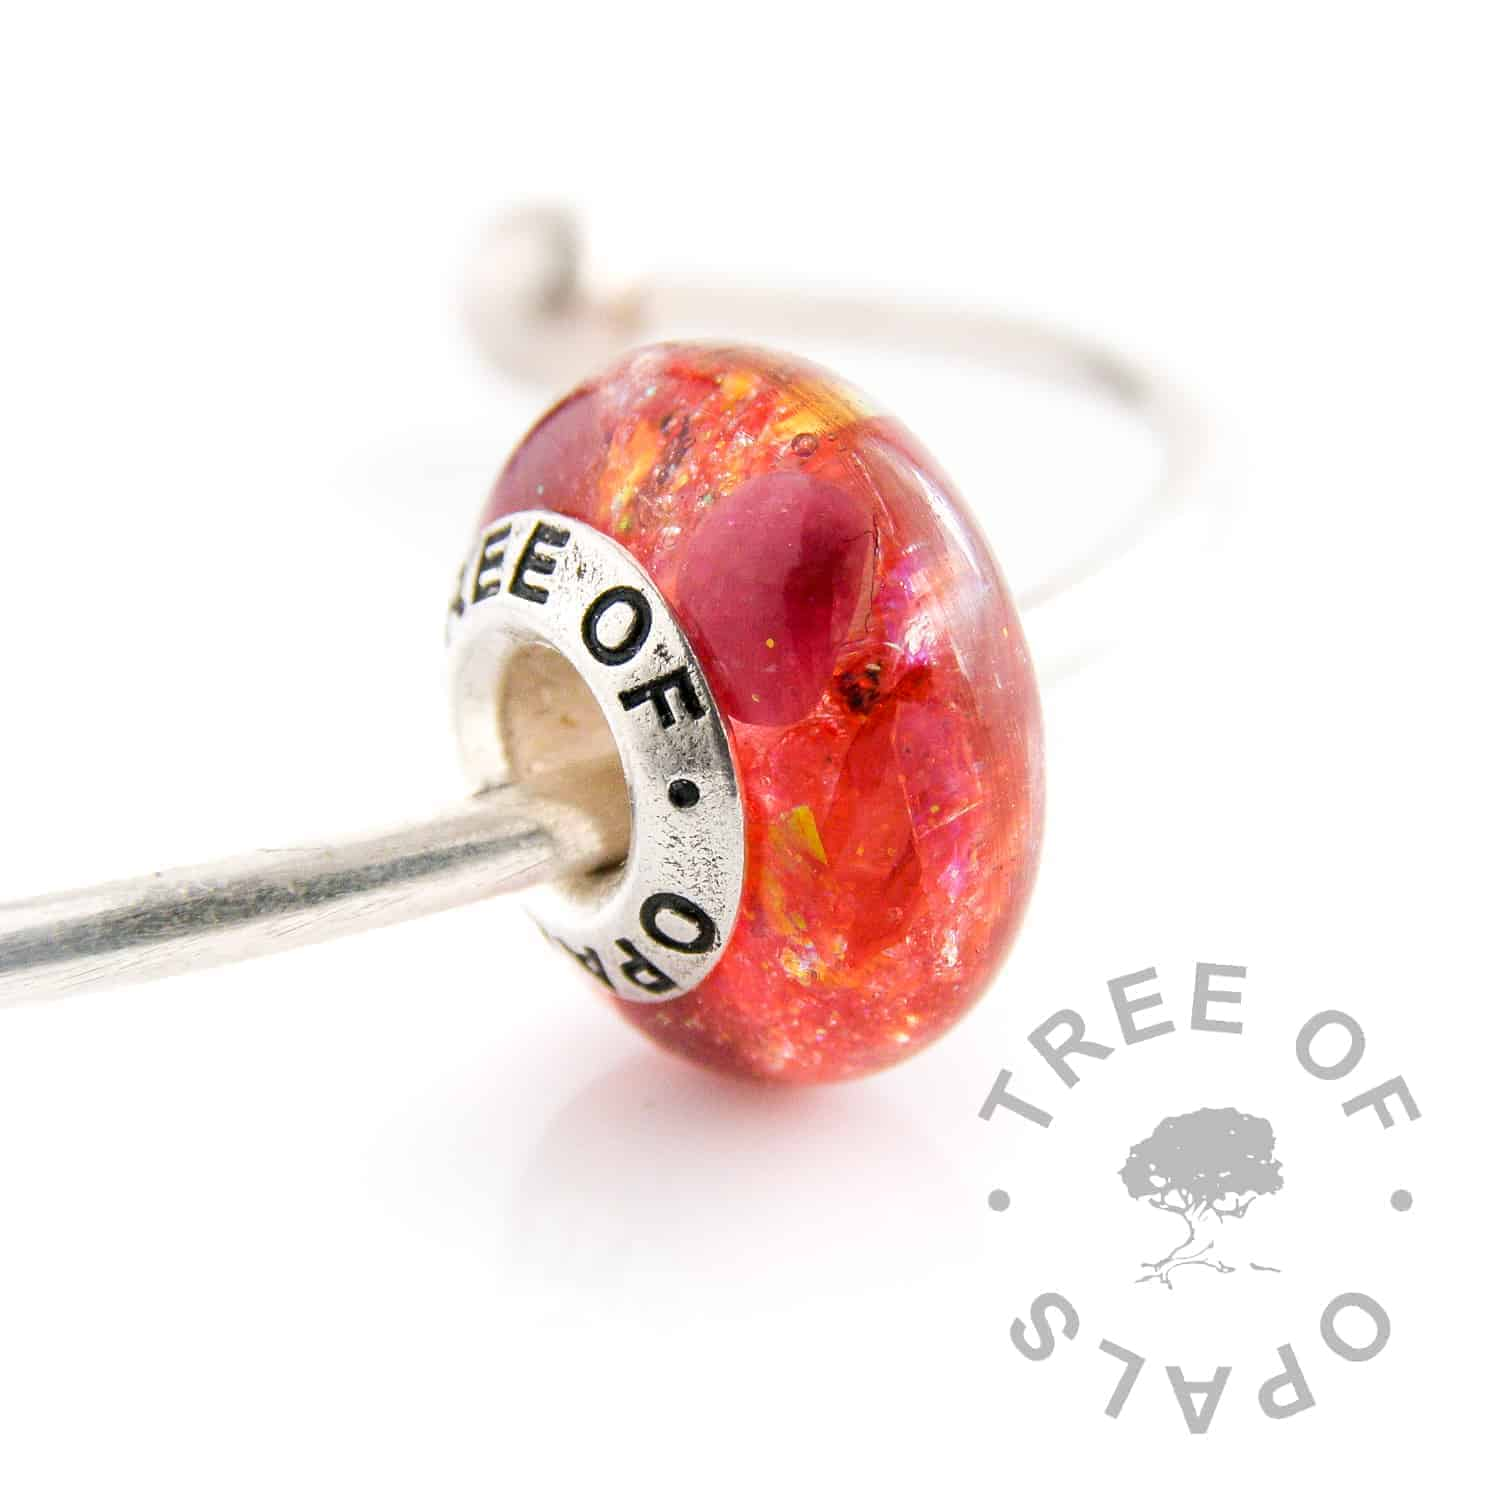 Lock of hair charm with ruby for July birthstone, rough natural gemstone. Red opalescent flakes and blonde naturally translucent hair